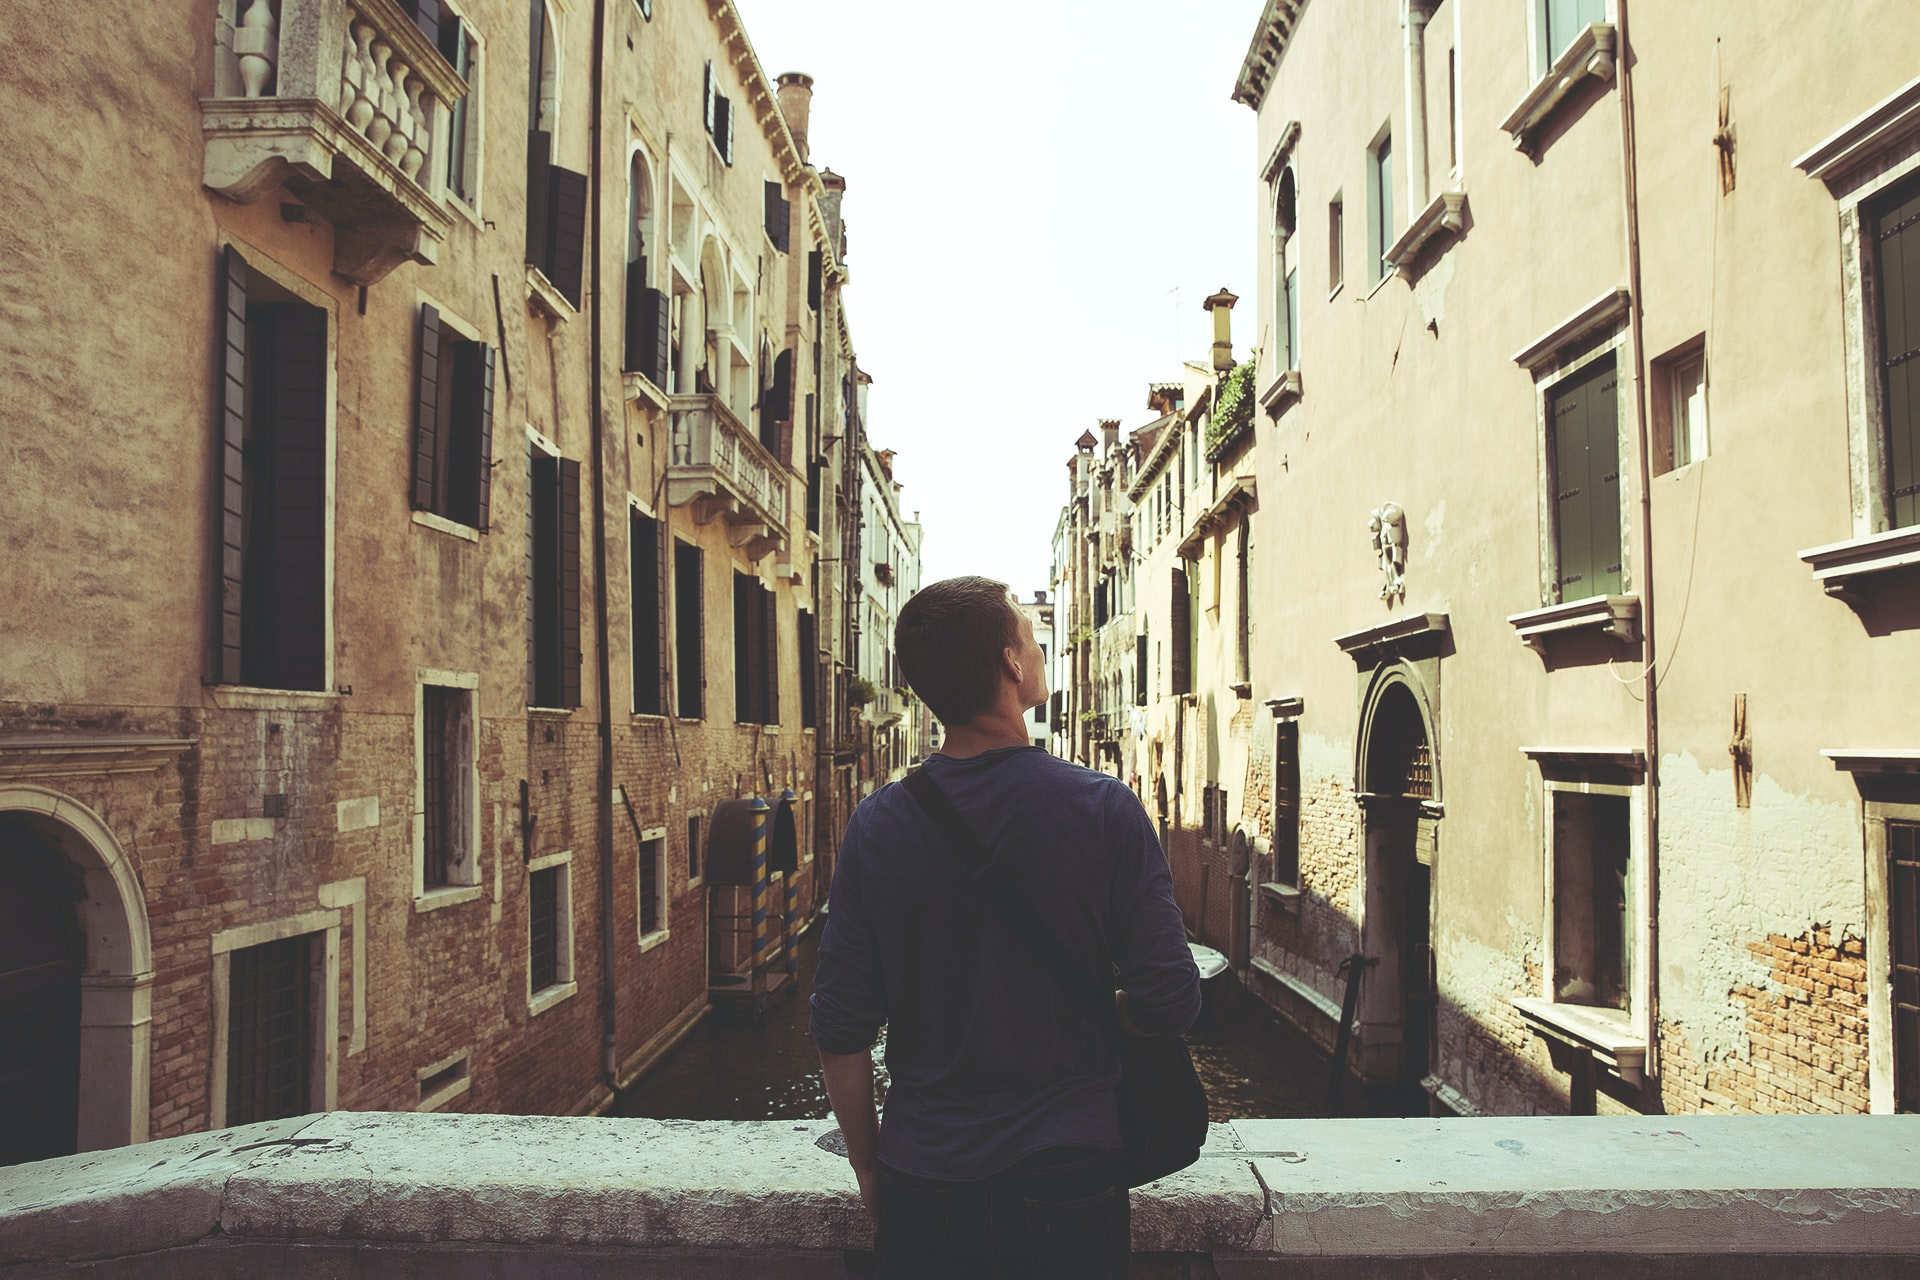 A man admiring old buildings over a canal in Venice